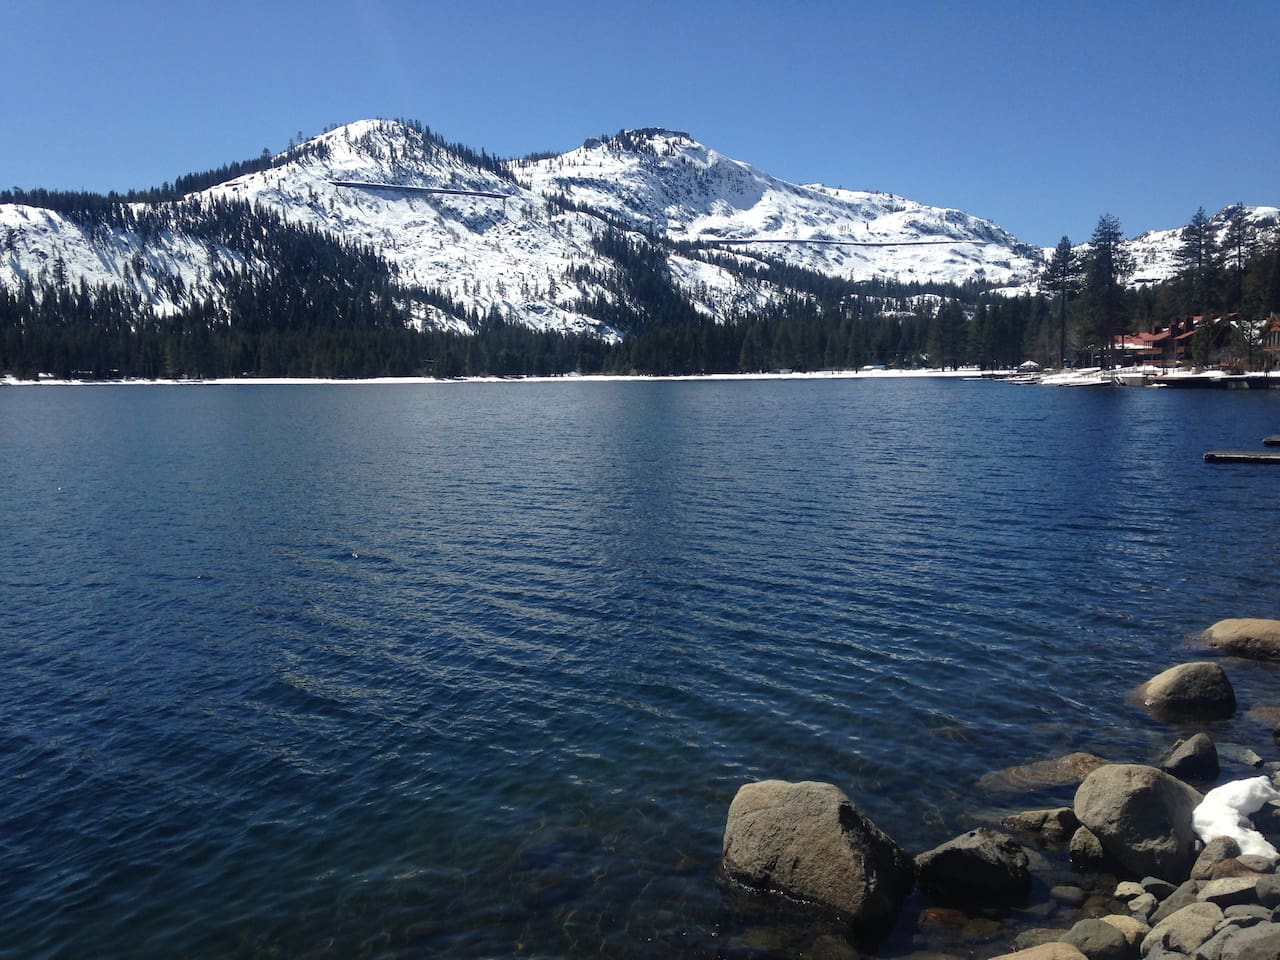 Looking toward Sugar Bowl Ski Resort from Donner Lake boat launch. The lake is a short drive down the hill from the suite location (3.5 miles).